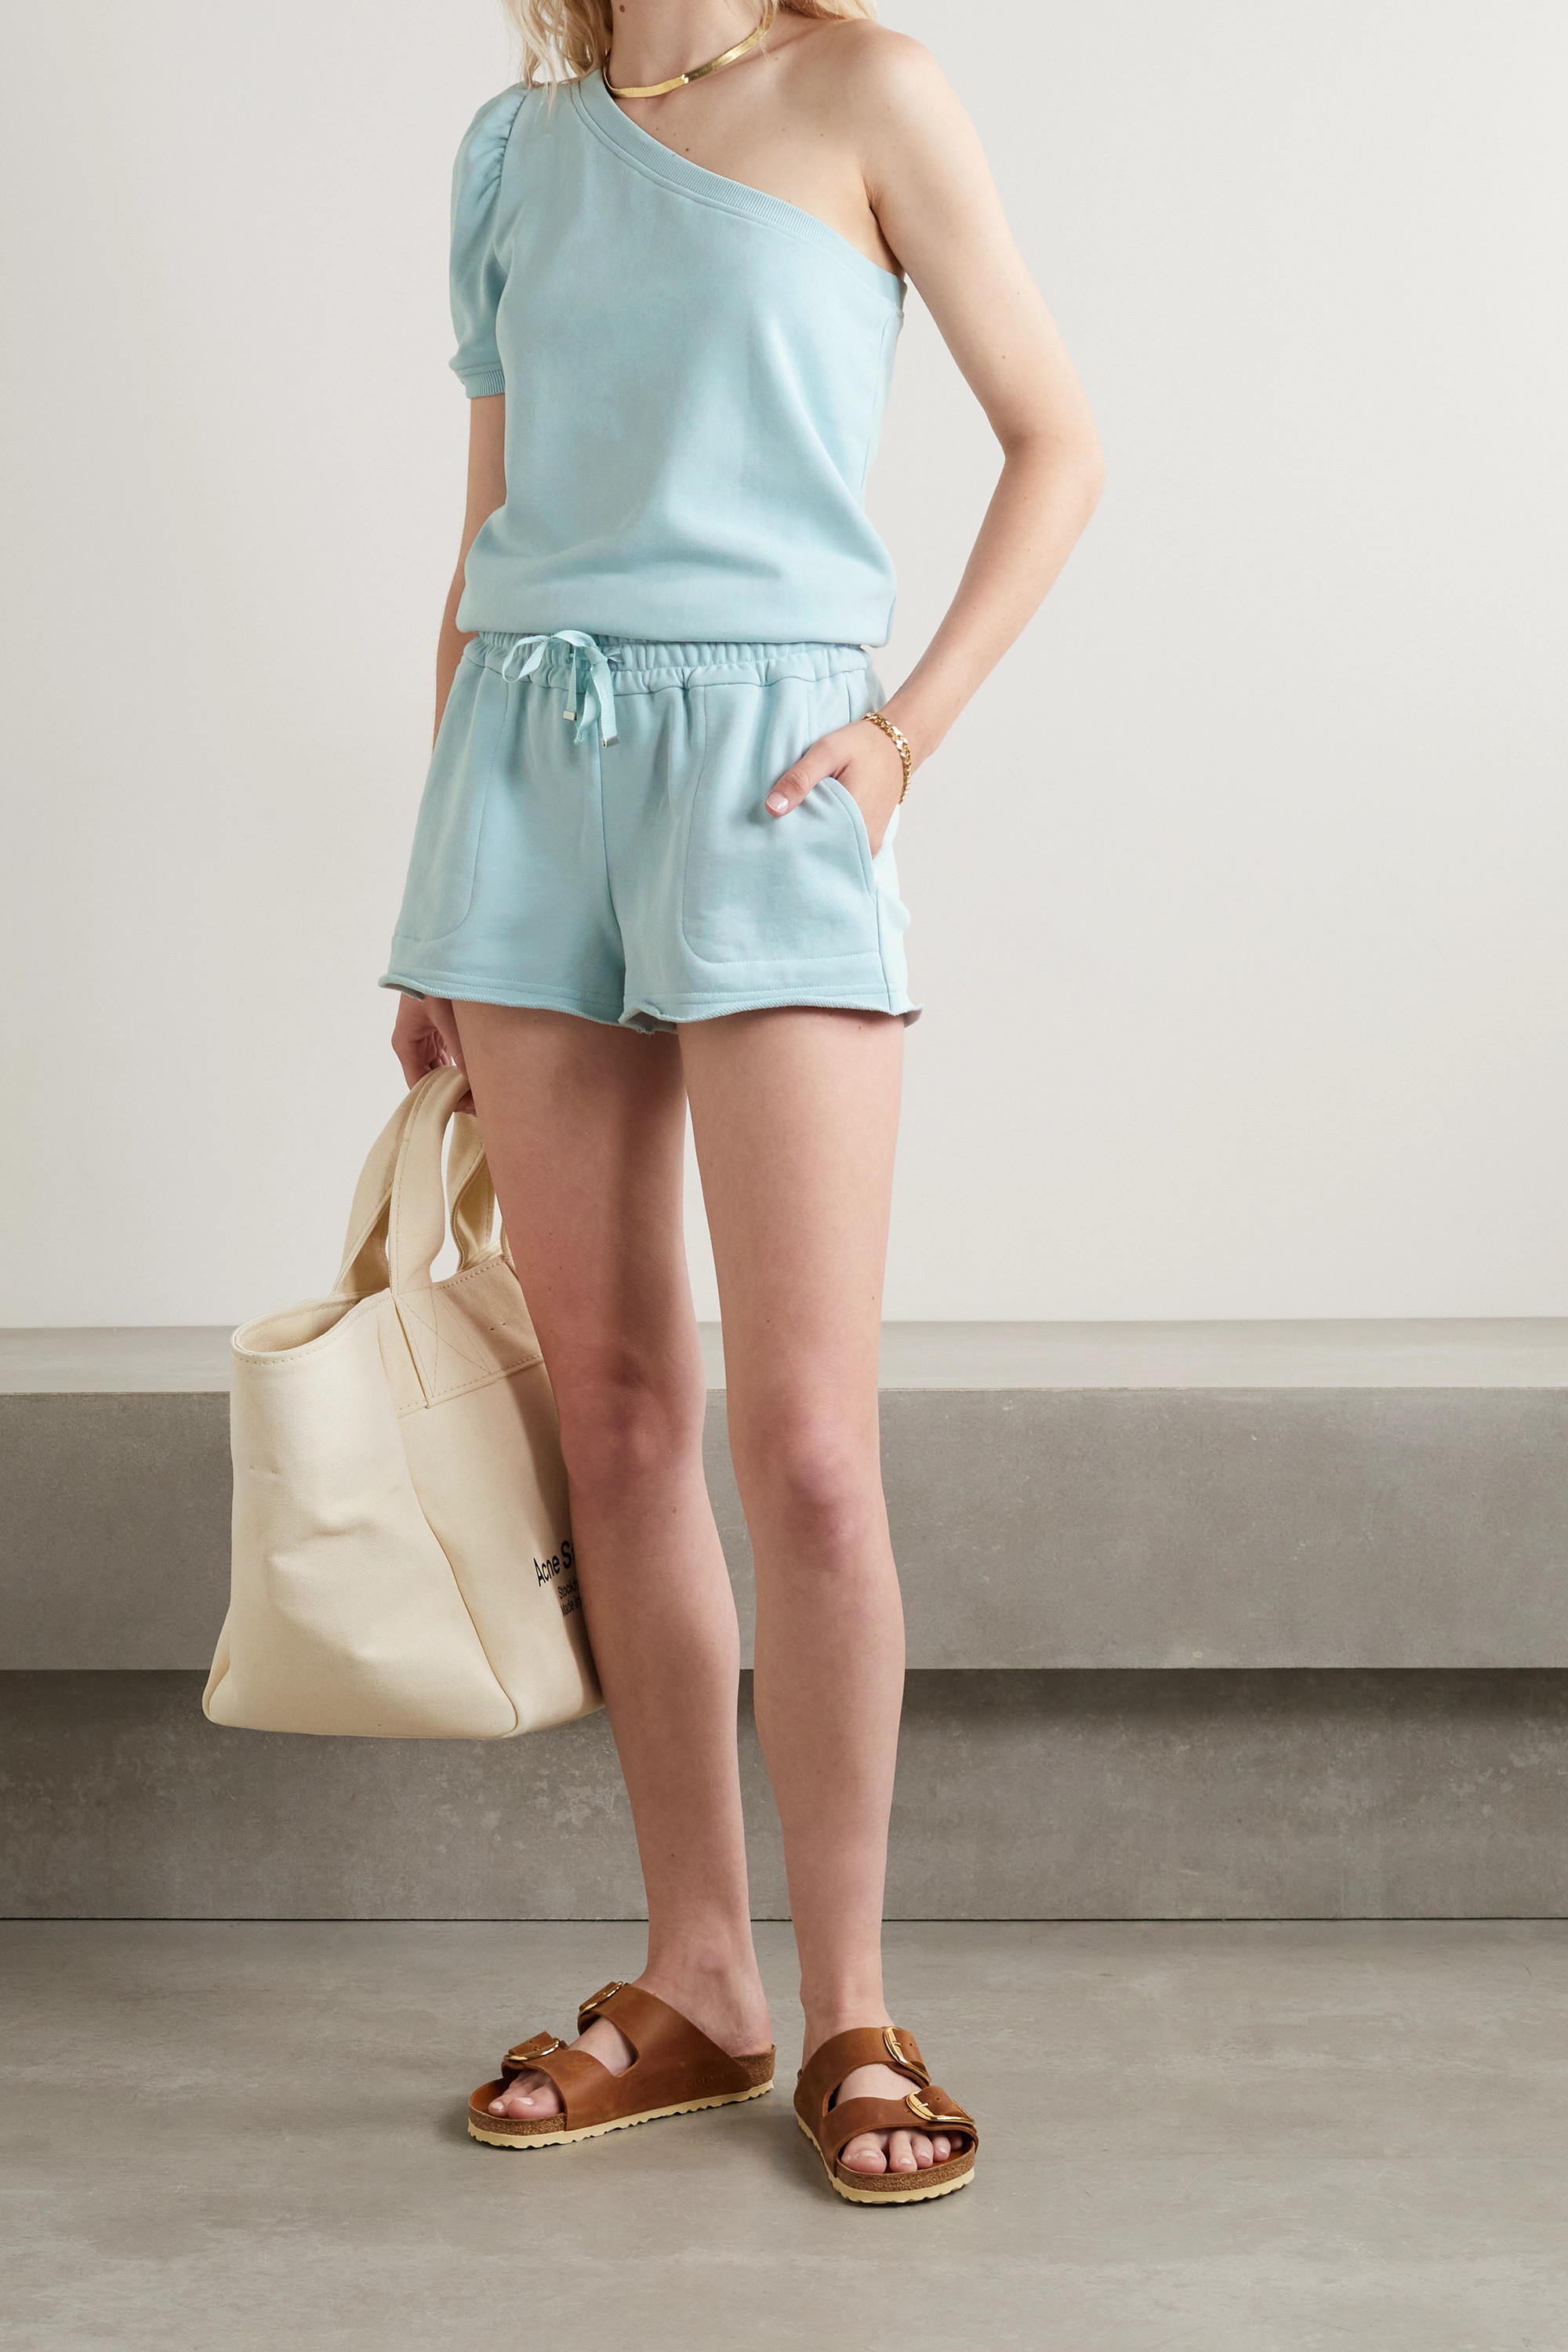 Cami NYC The Lynley French cotton-terry shorts